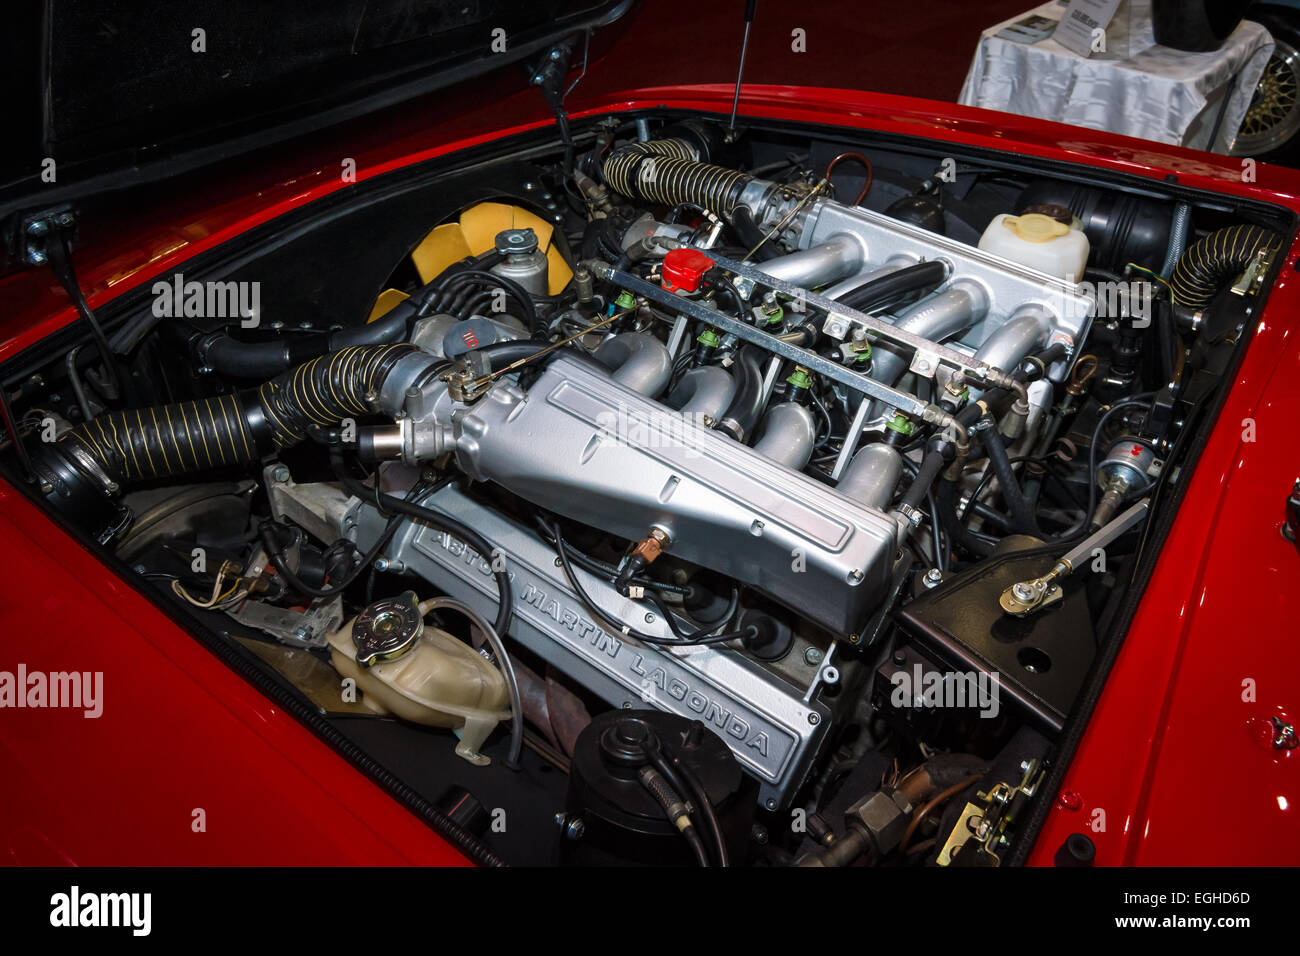 Engine Of The Car Aston Martin V8 Vantage Stock Photo 79059525 Alamy